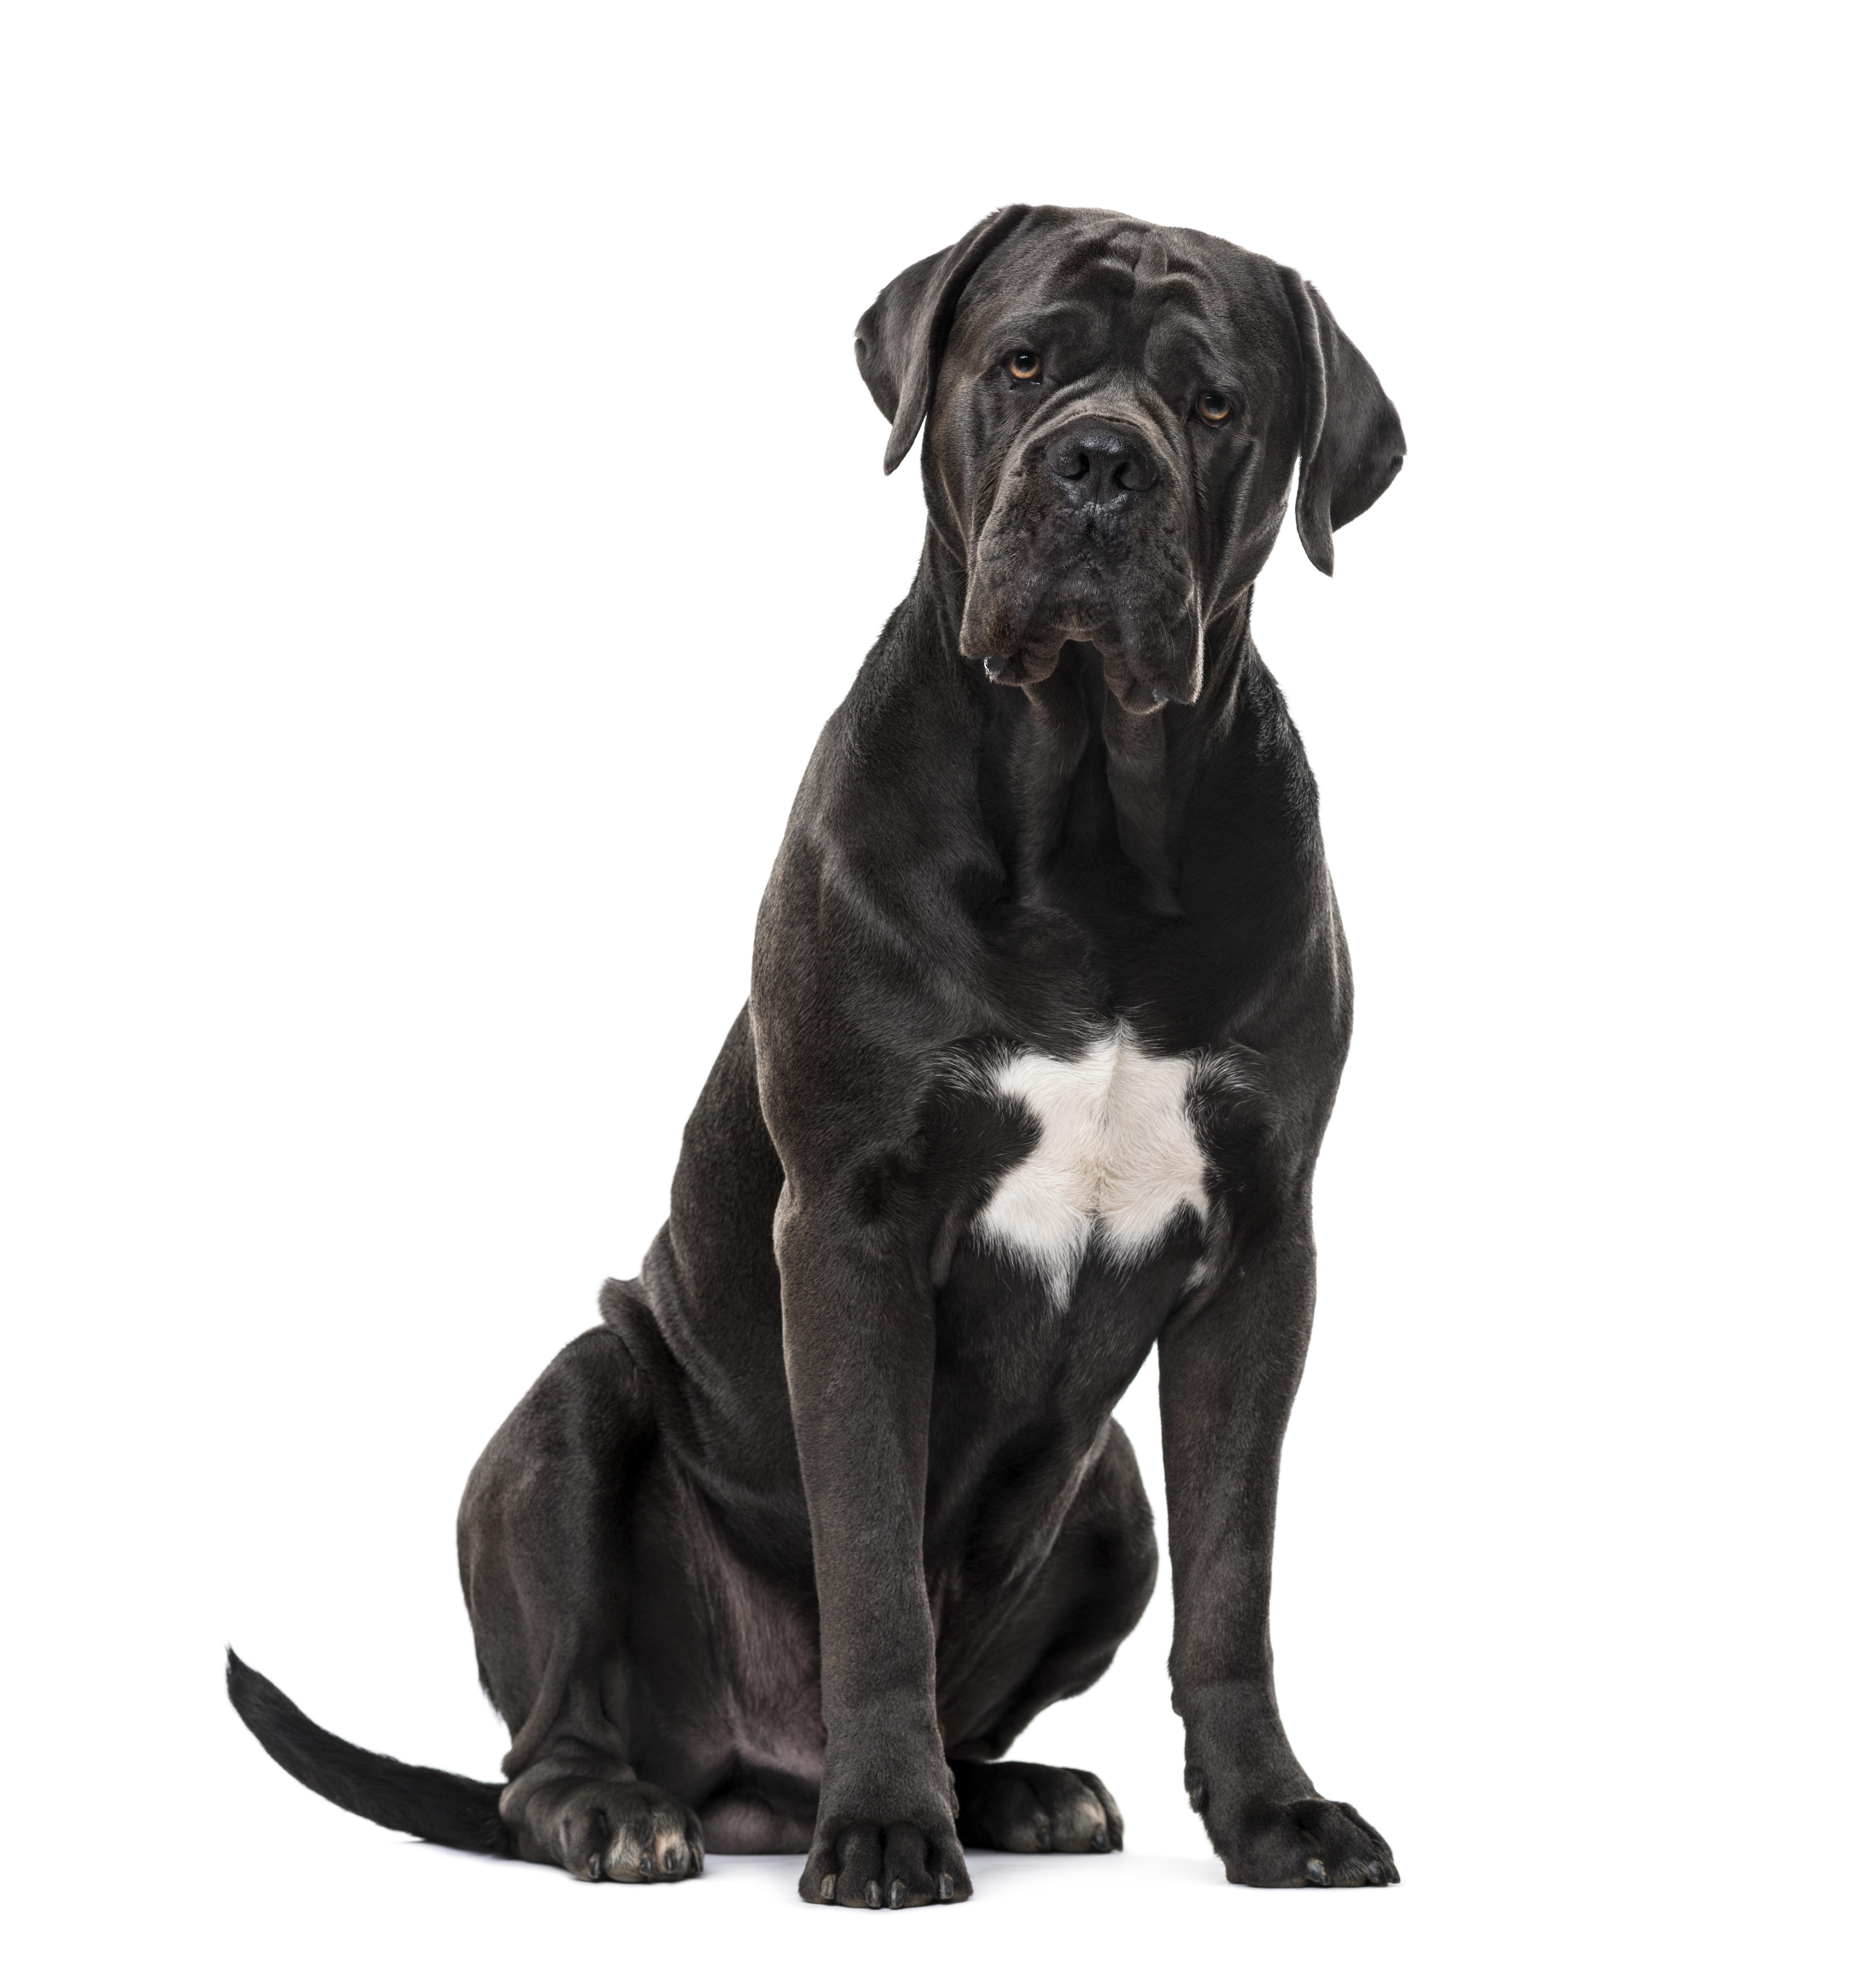 Cane Corso dog sitting in front of white background